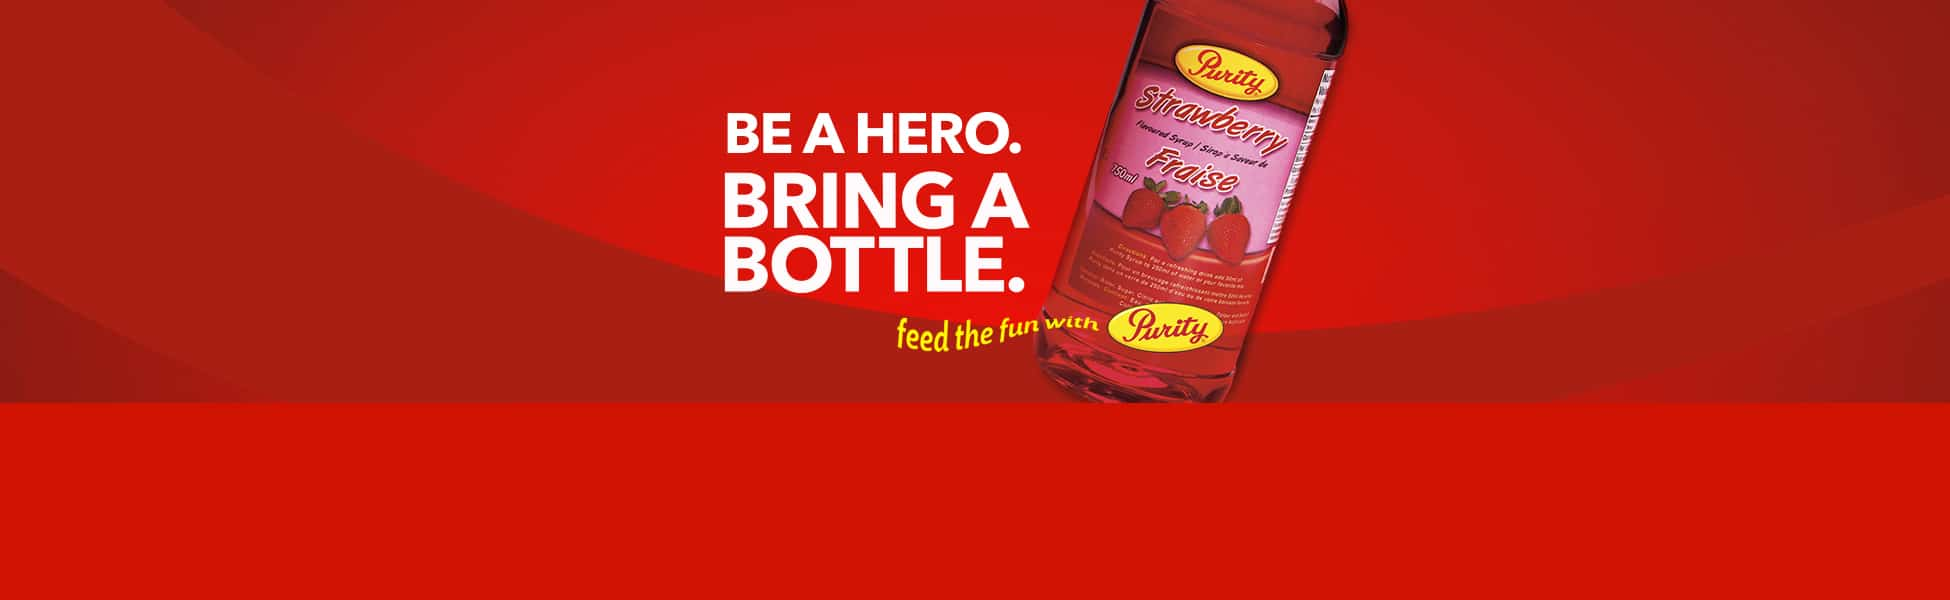 Be a Hero. Bring a Bottle.